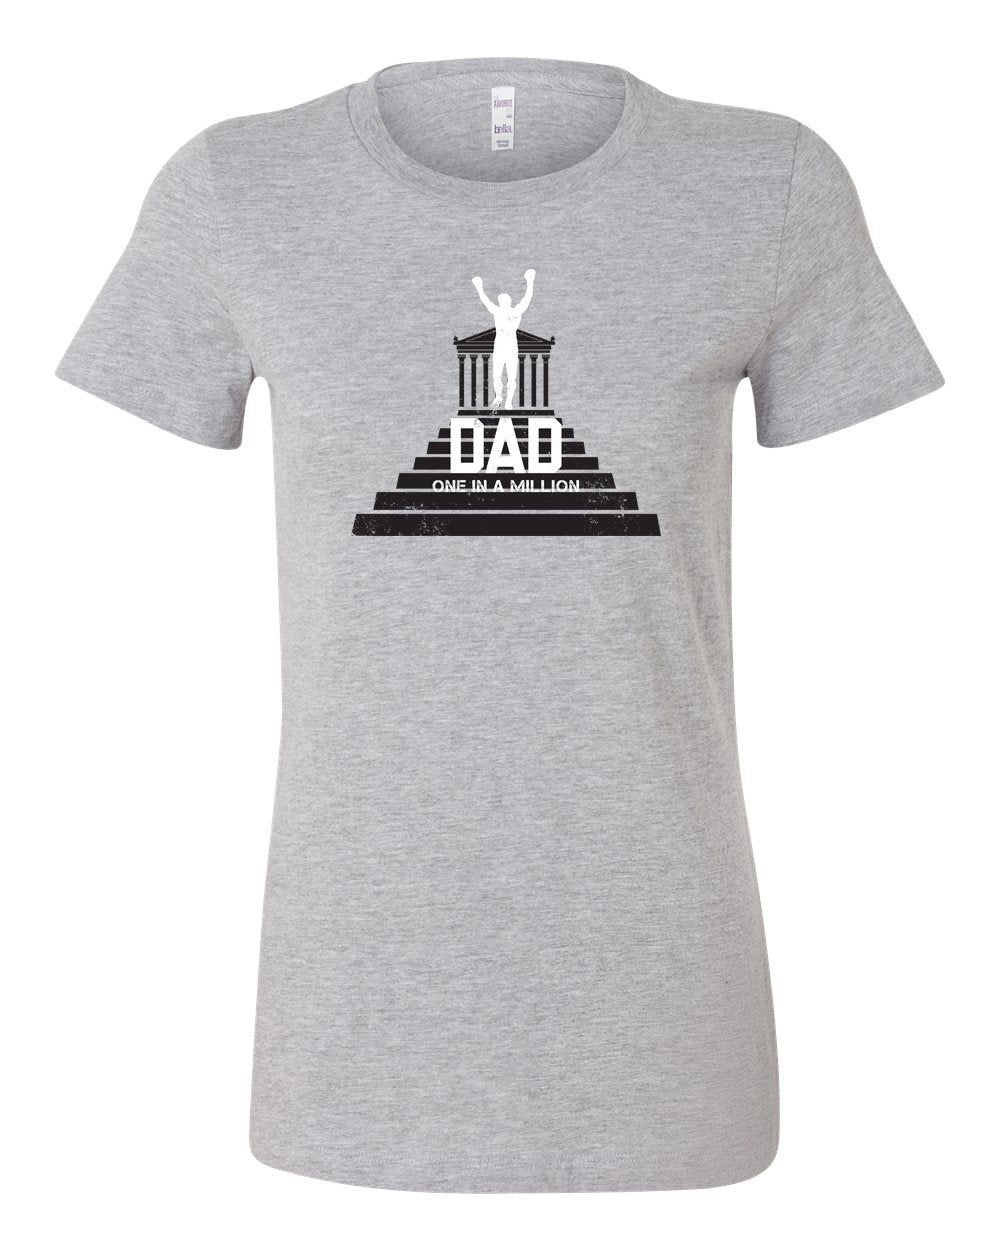 One in a Million Dad LADIES Junior-Fit T-Shirt